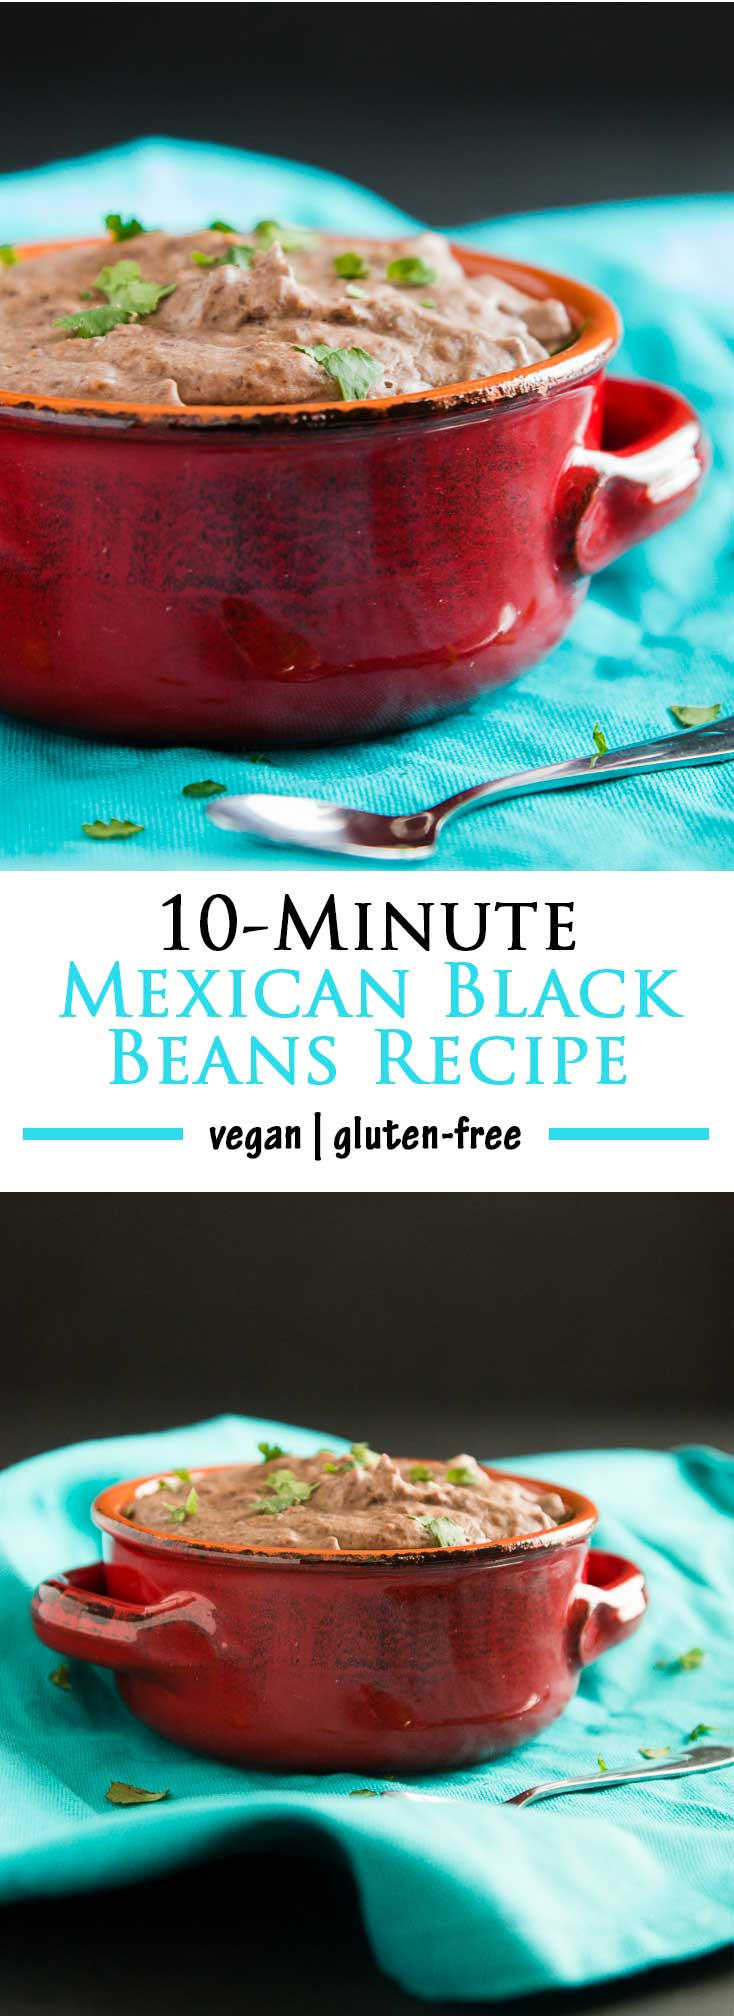 Take your go-to meal up a notch by making these healthy vegan 10-Minute Mexican Black Beans Recipe! No extra time, ALL the extra flavor and deliciousness! #vegan #glutenfree   vegetariangastronomy.com